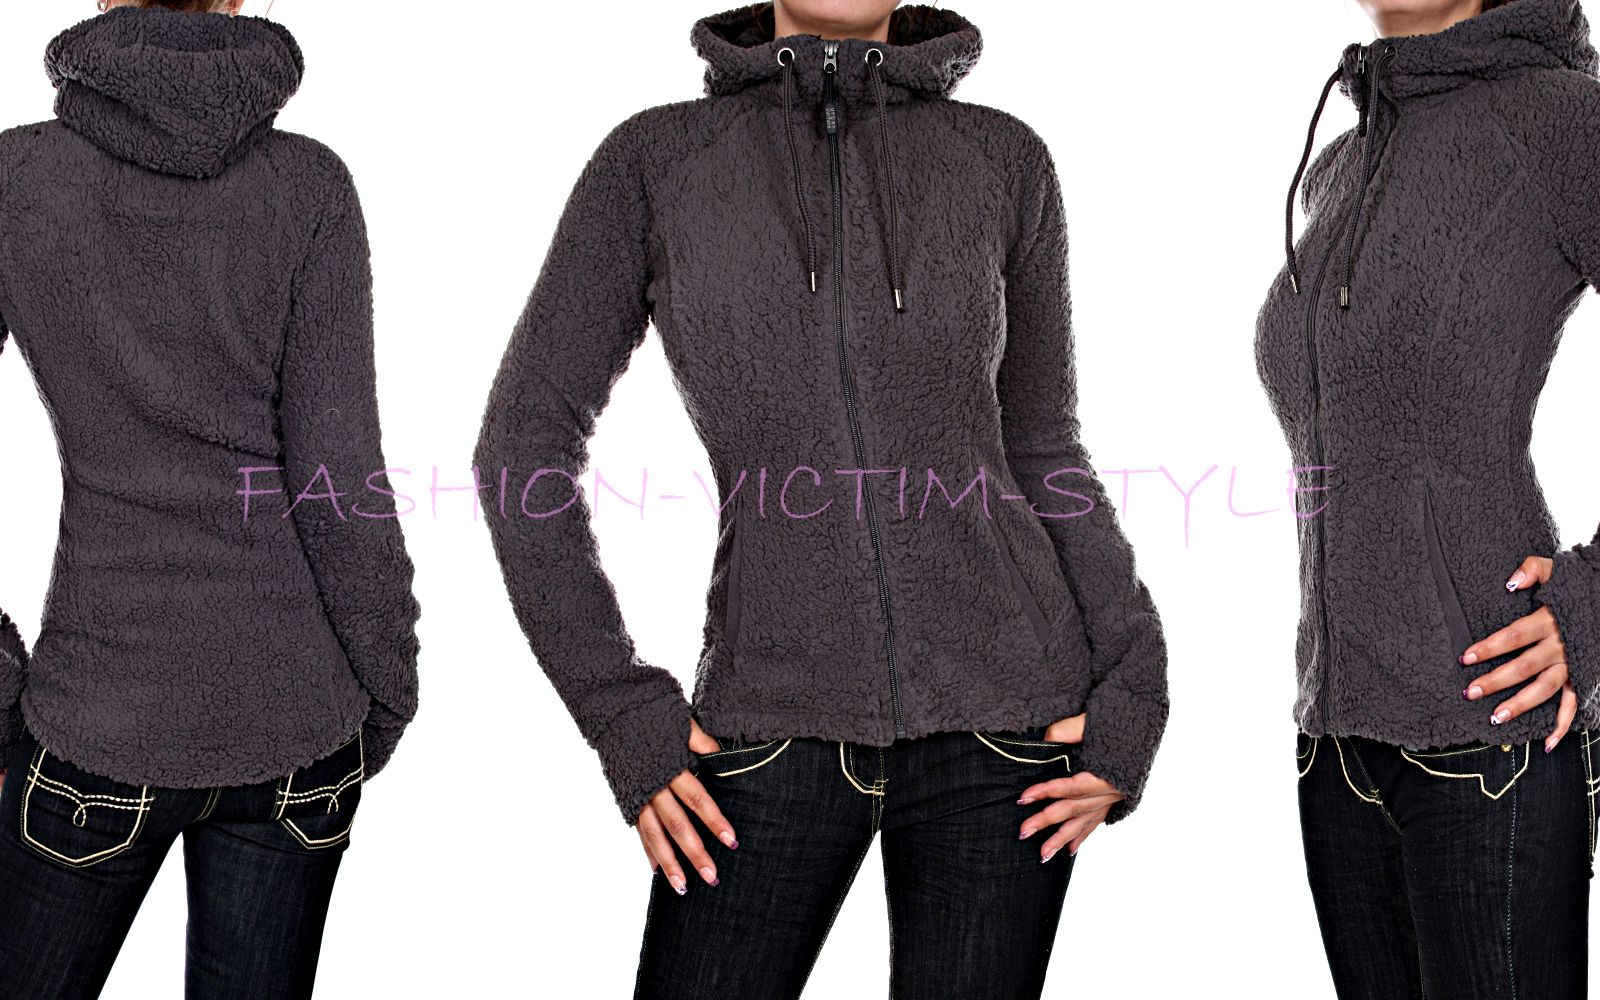 Neu Sweatjacke on Warme Damen Jacke Pullover Fleece Teddy 6vfybYg7